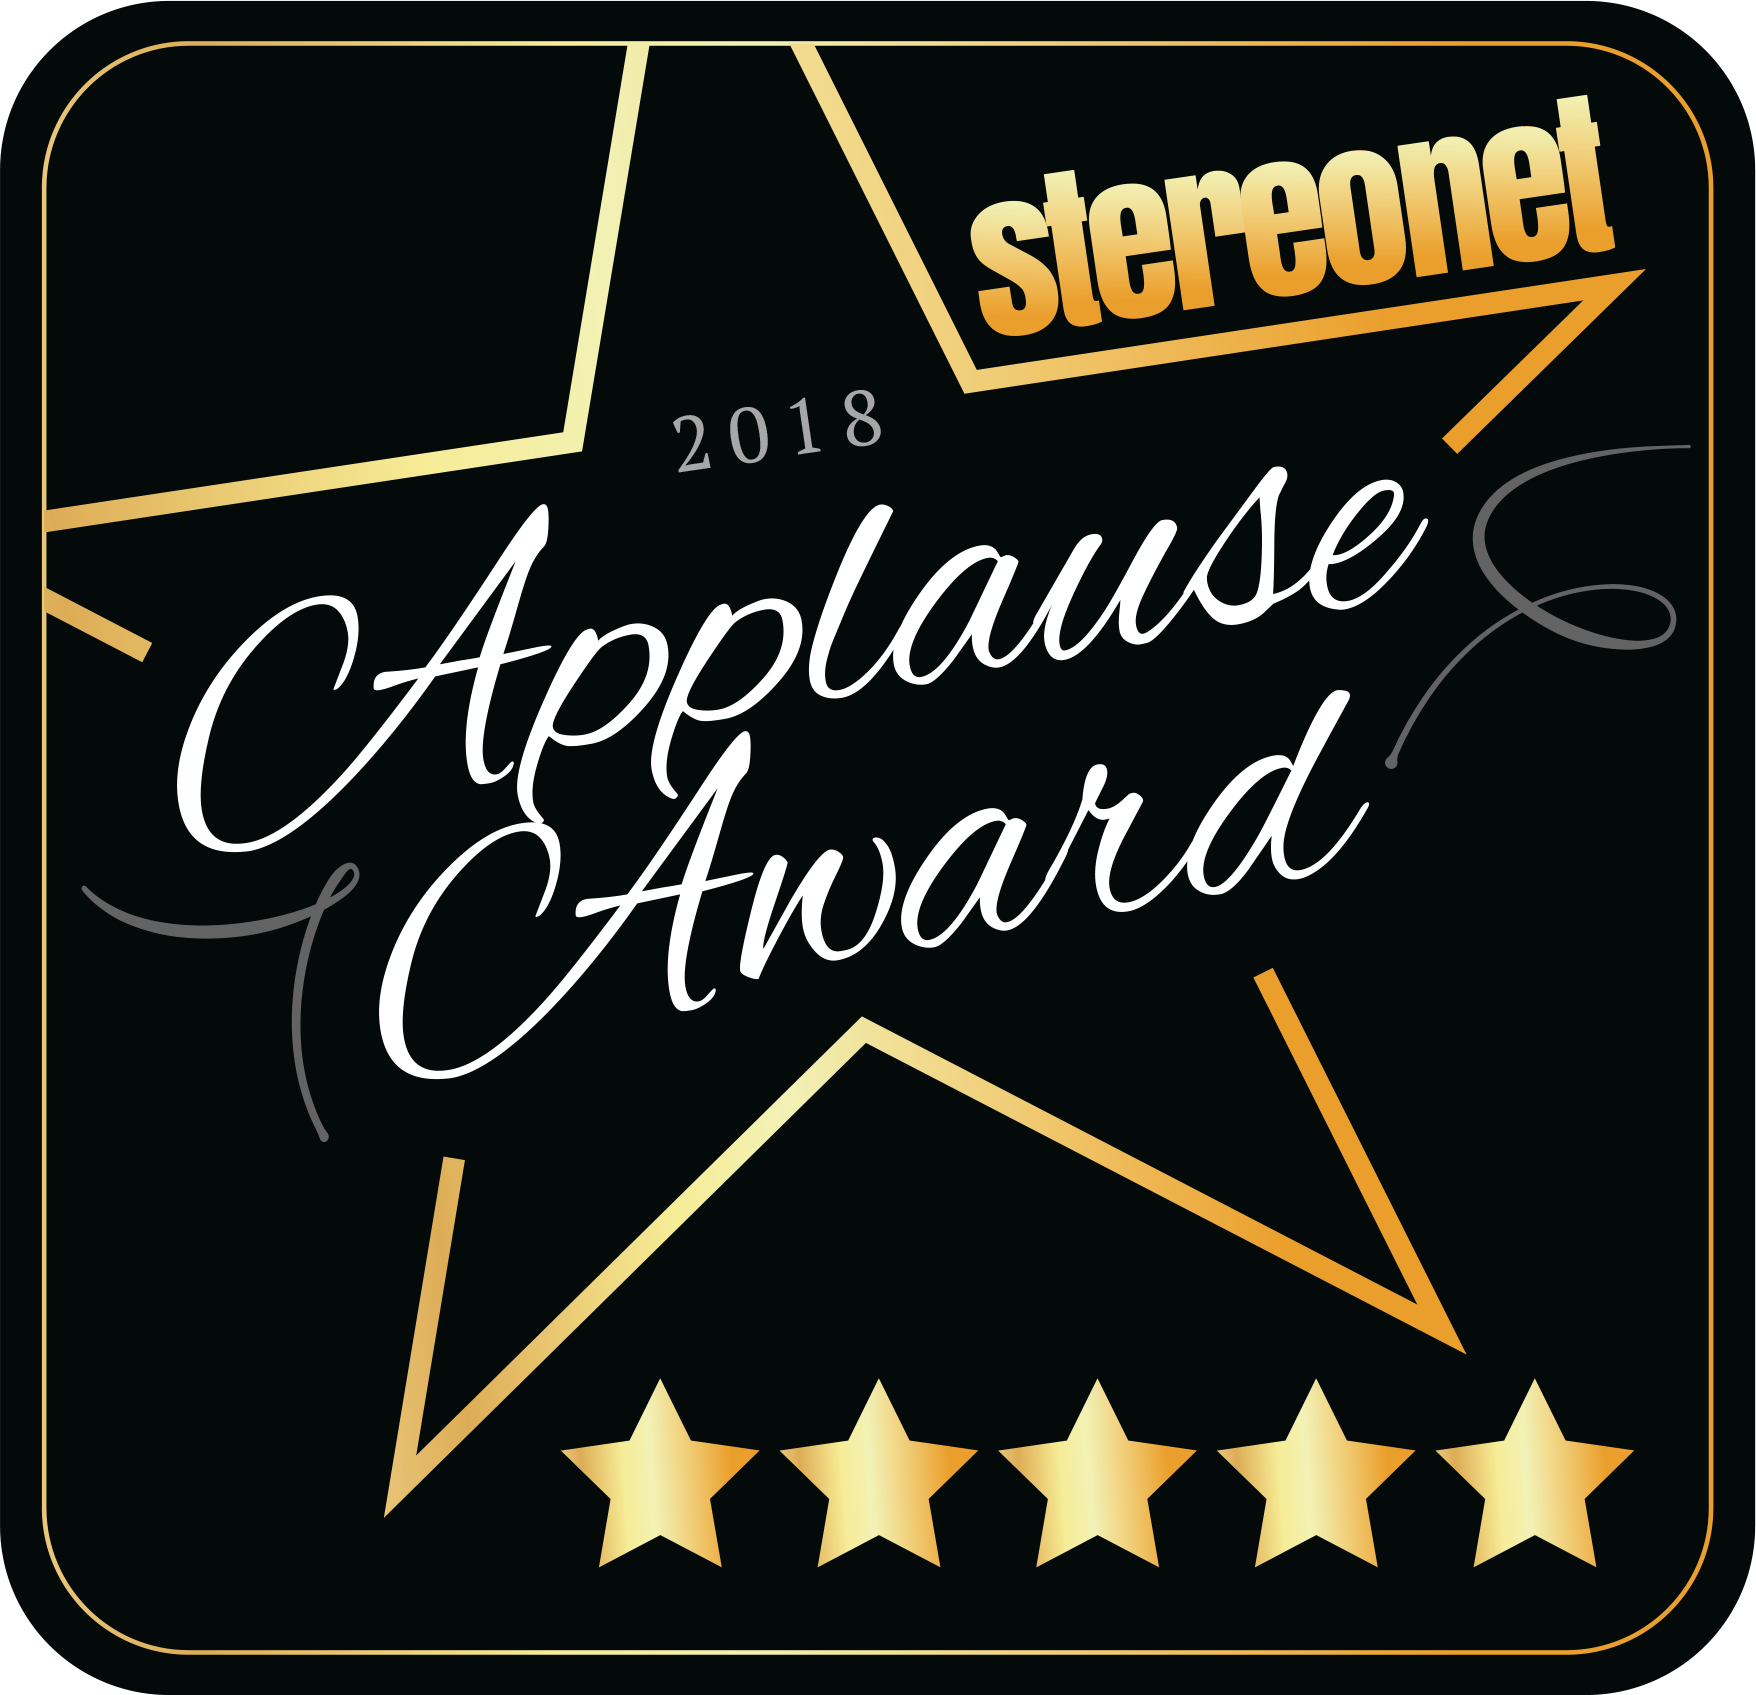 StereoNet Applause Award 2018/2019